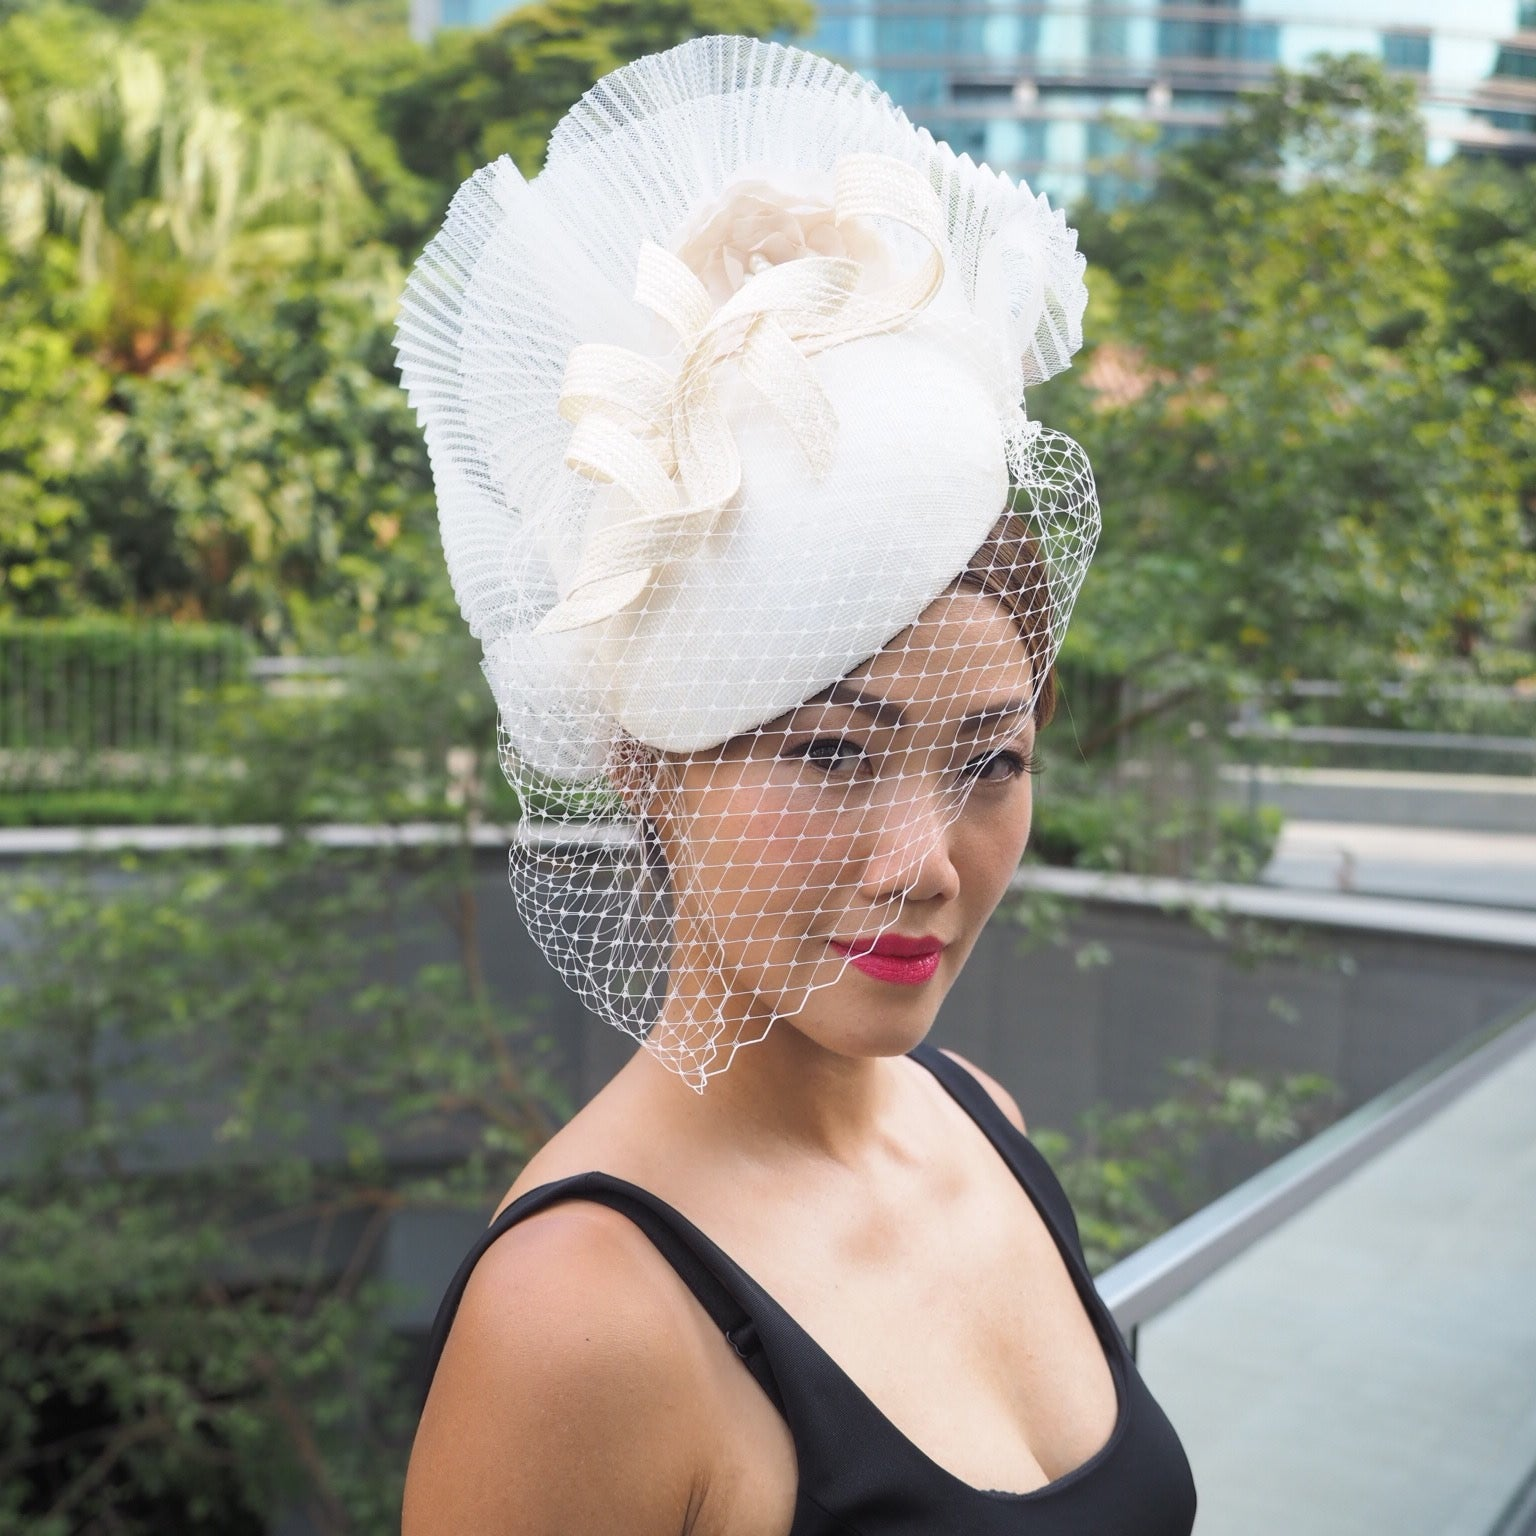 3a542657f96 Cambridge - Elegant Classic Beret Style Hat with Birdcage Veil - NOELEEN  MILLINERY HONG KONG